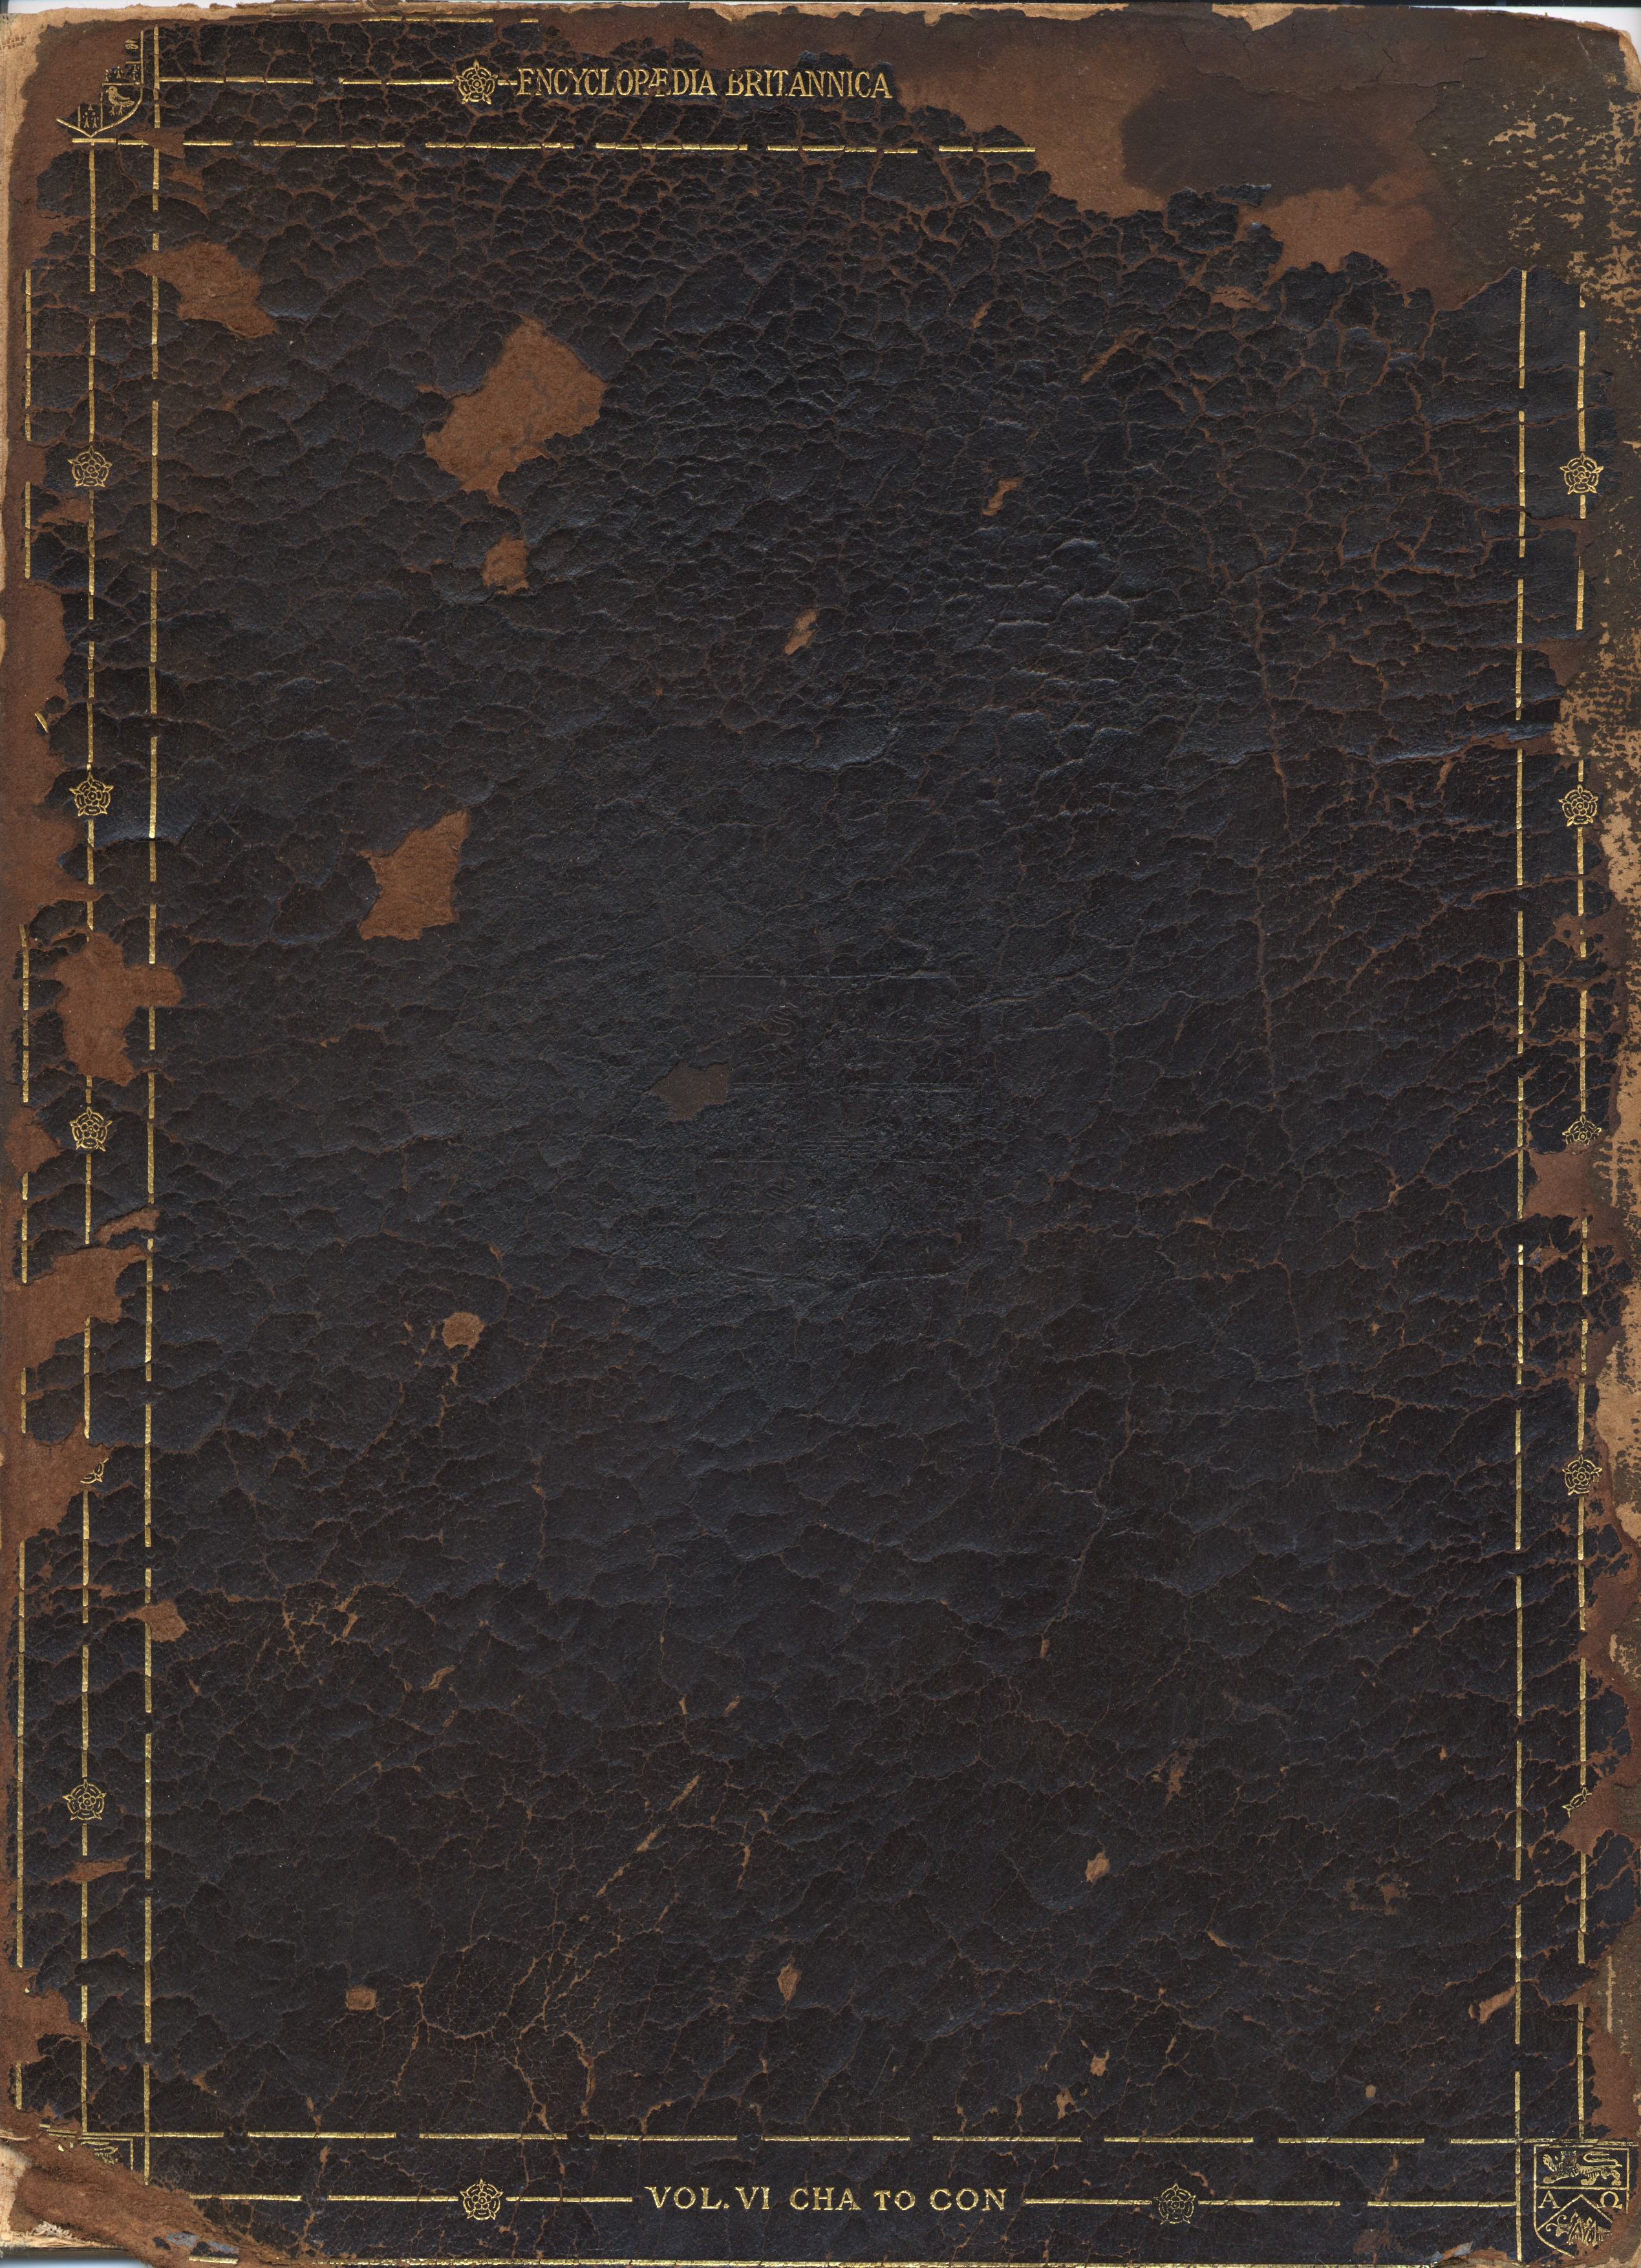 Book Cover Design Texture : Old book cover texture l t